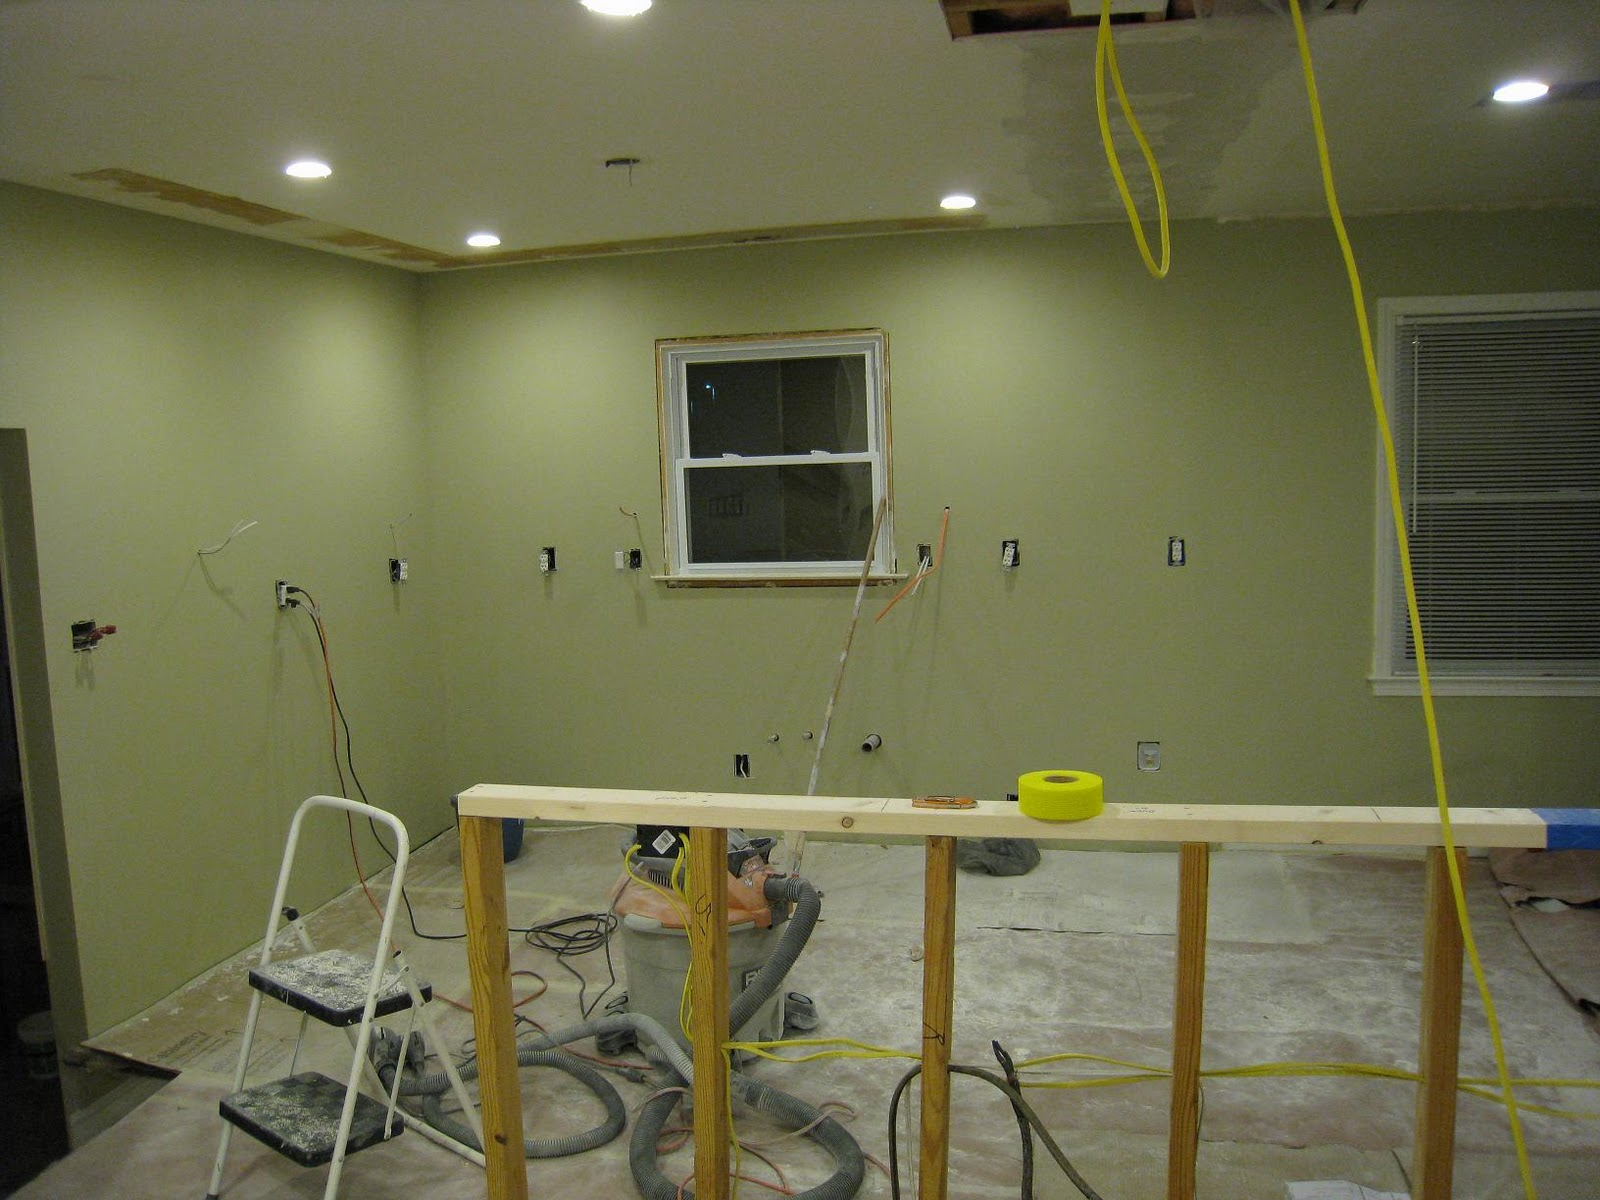 pictures for kitchen walls tile floor our goneaway house painted